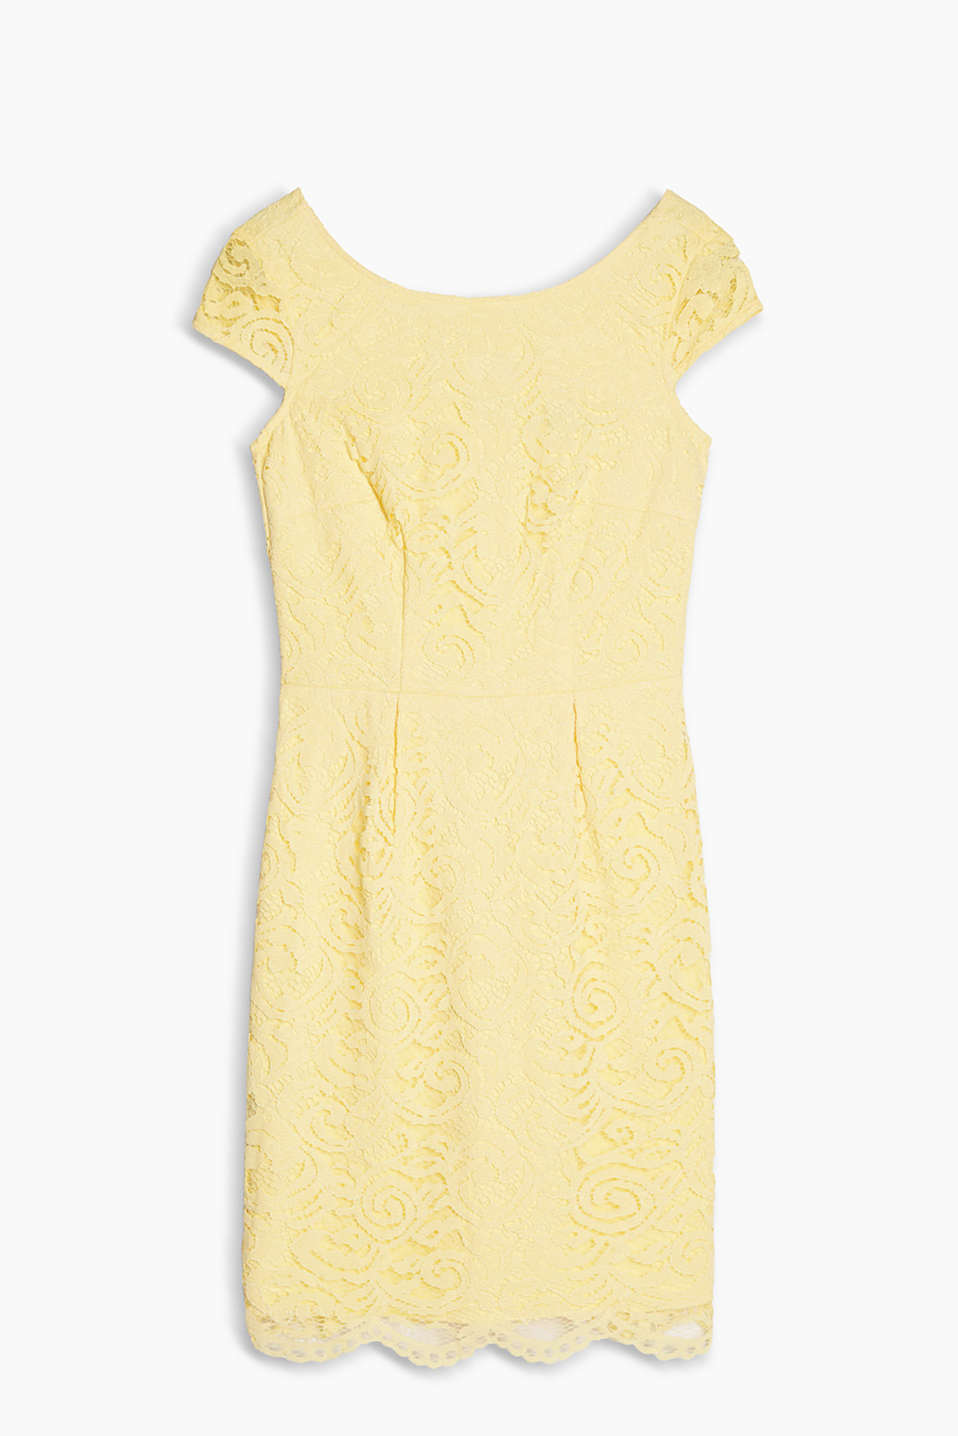 Fitted lace sheath dress with cap sleeves